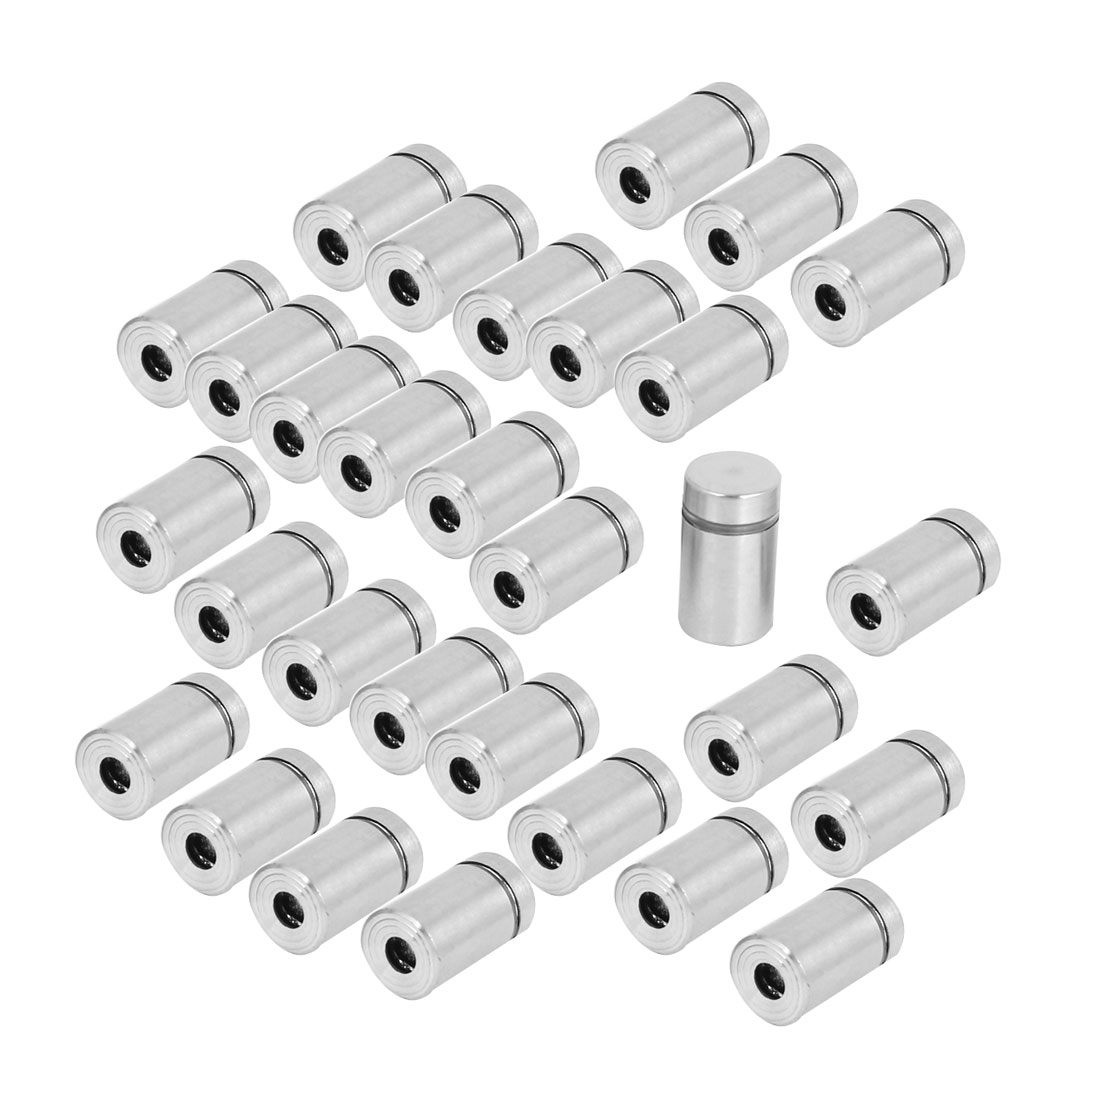 Stainless Steel Advertising Nail Wall Support Glass Standoff Fixing Screw 30pcs